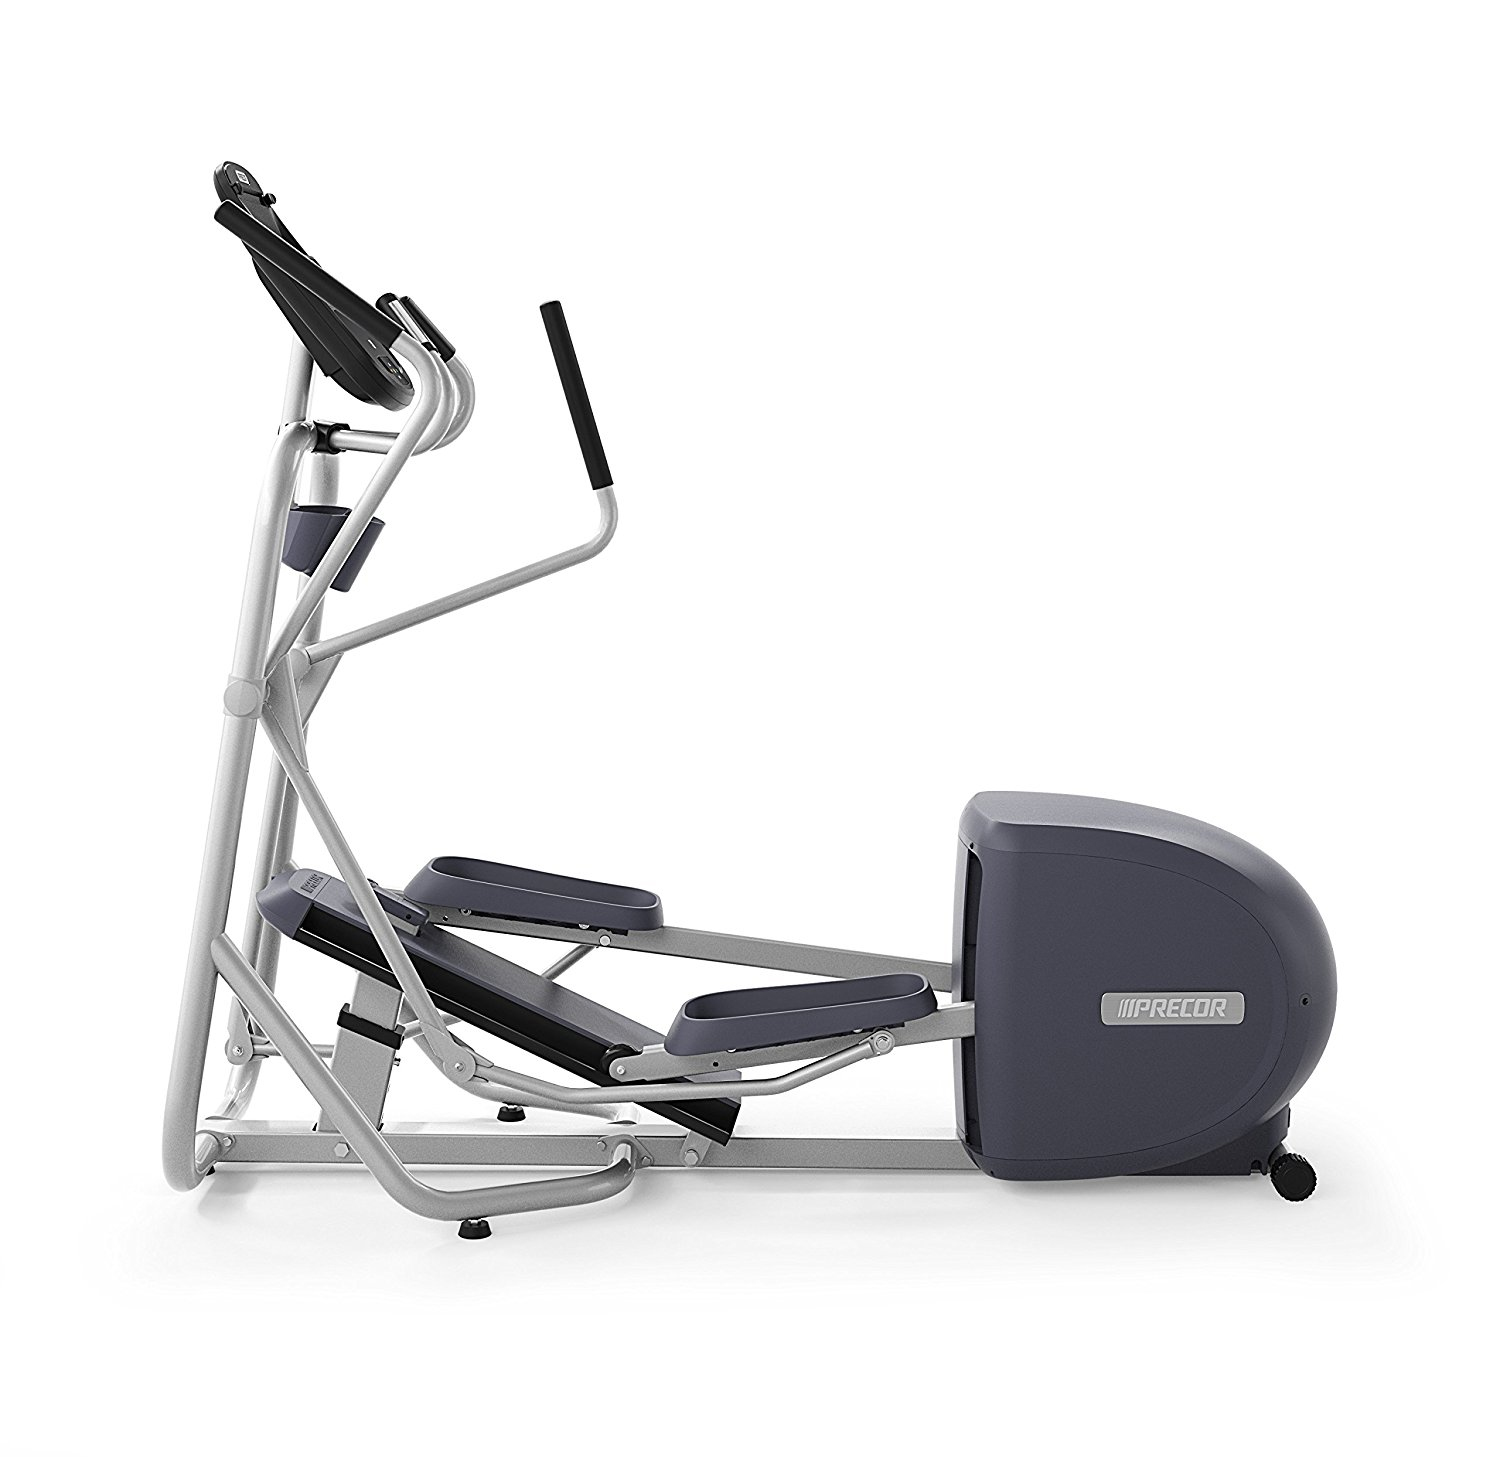 Precor EFX 222 Elliptical Fitness Crosstrainer Review